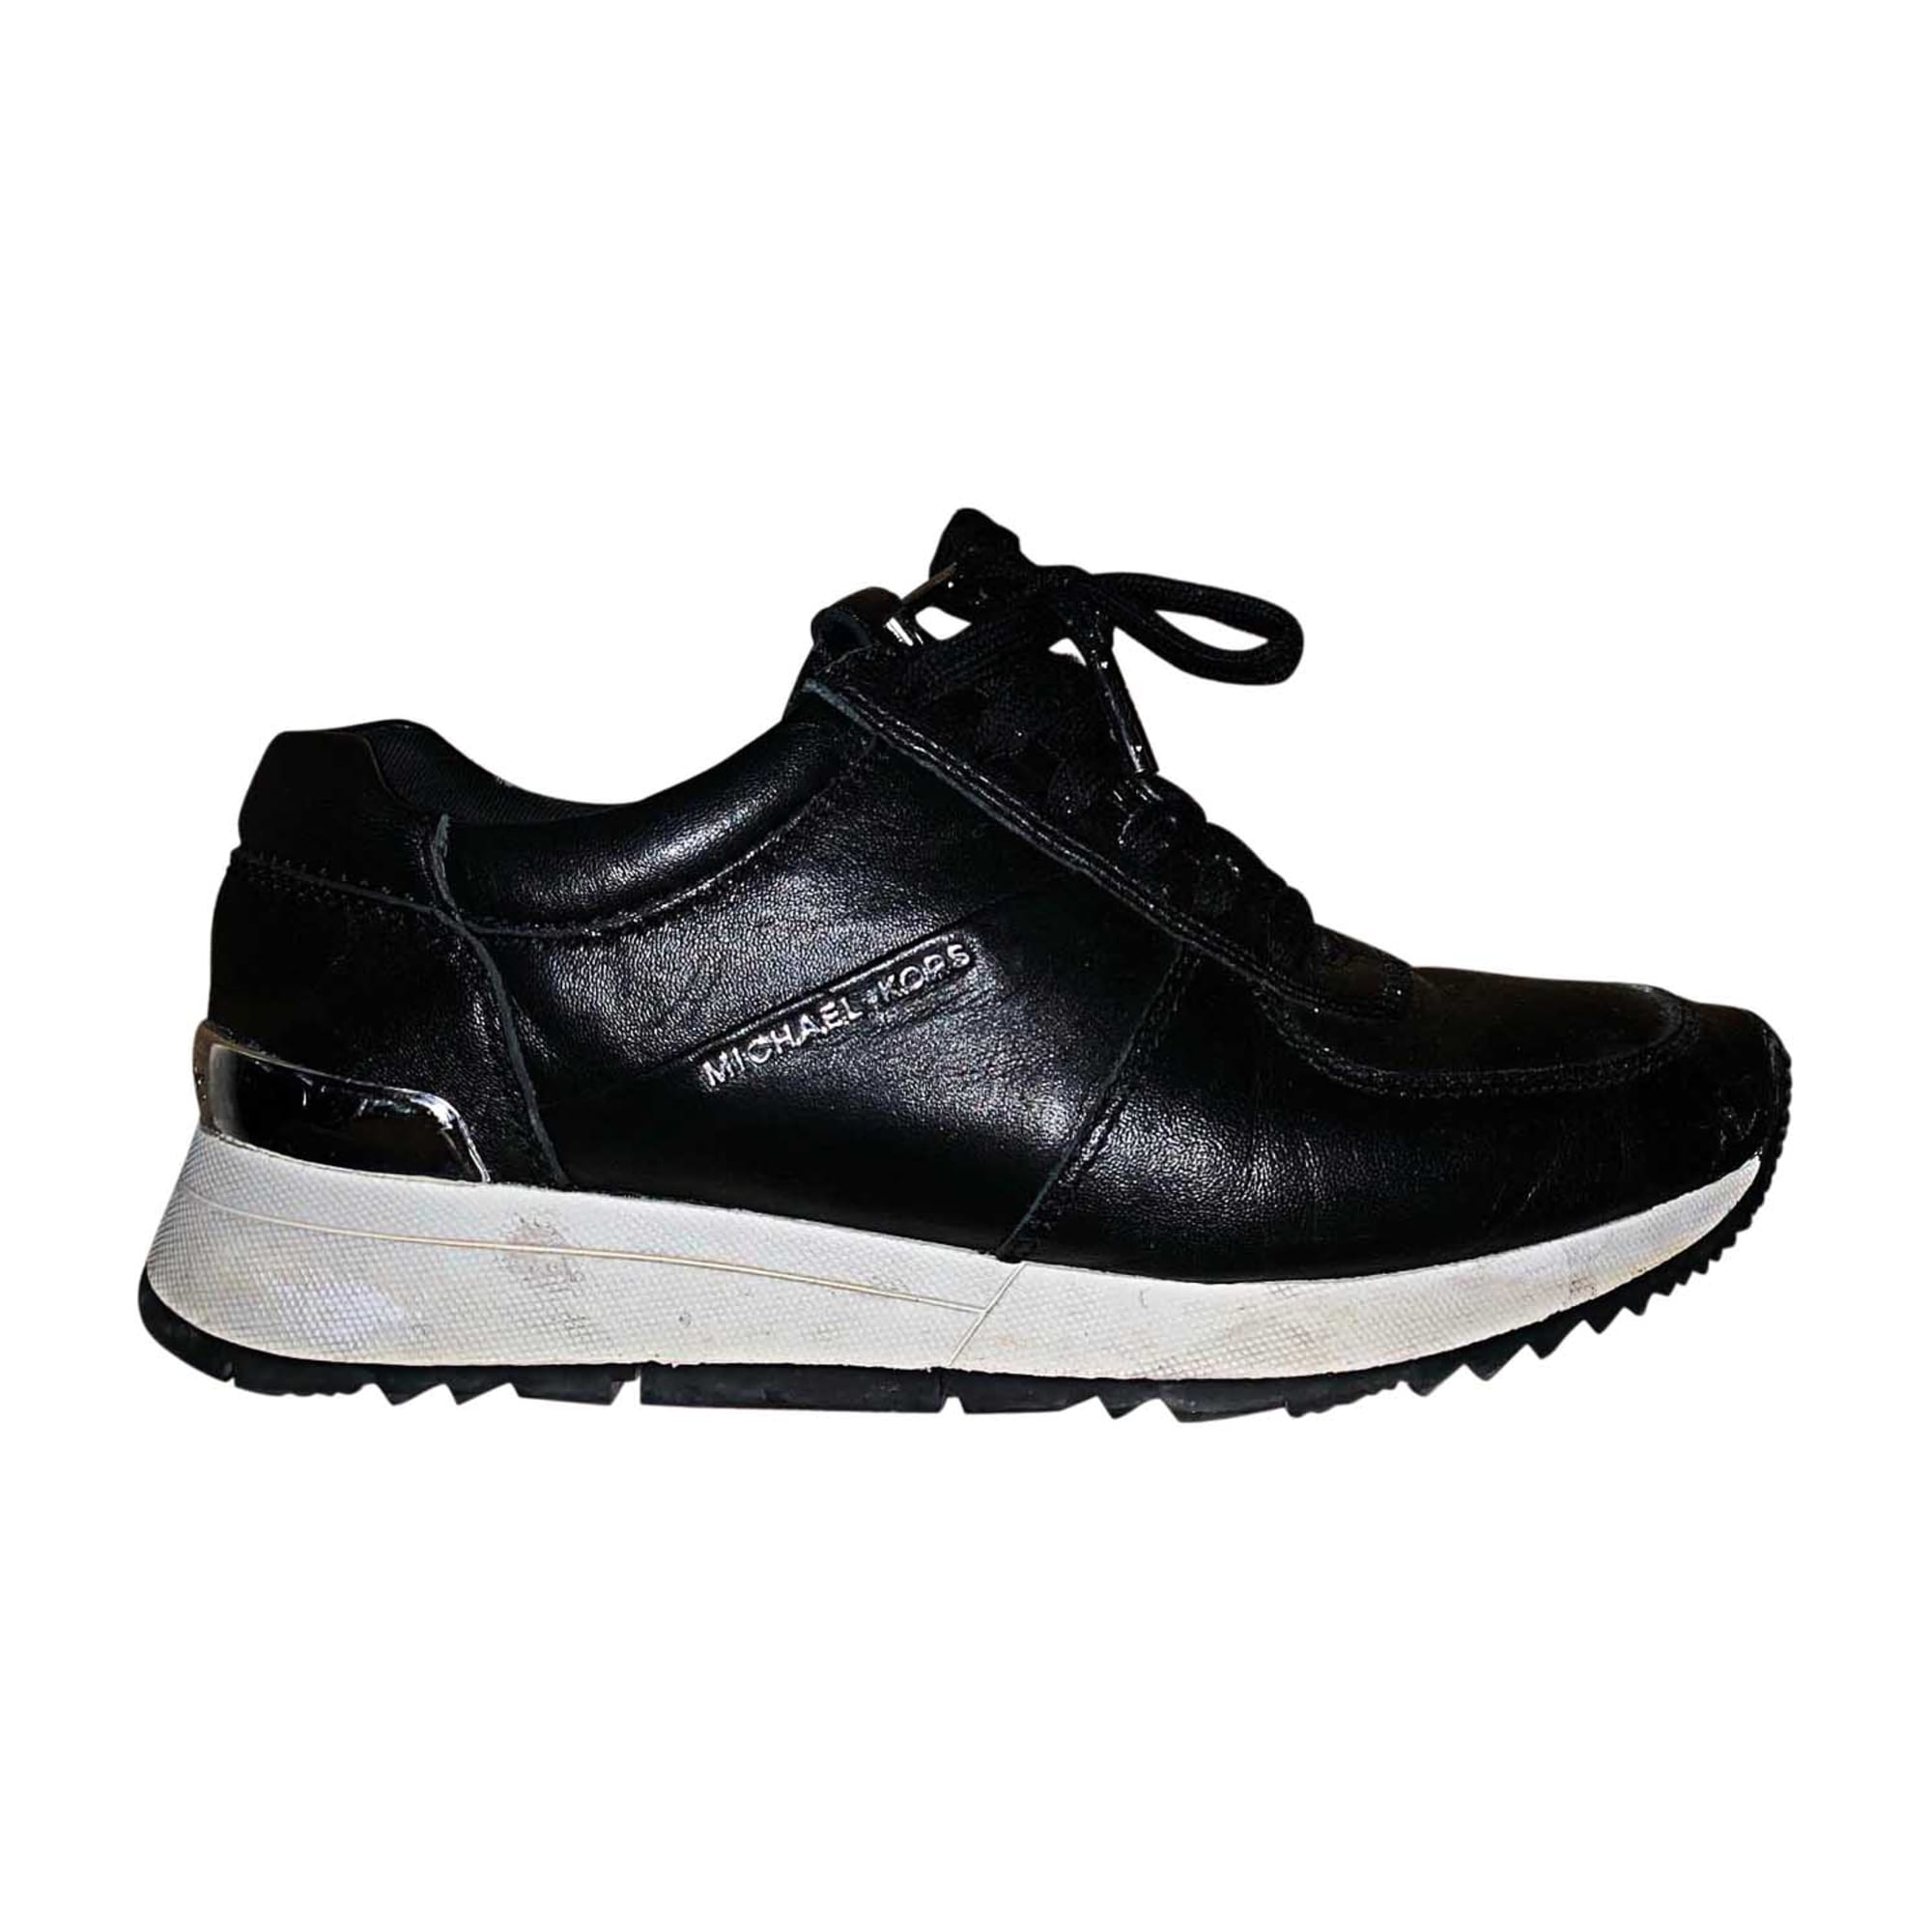 Sneakers MICHAEL KORS Black